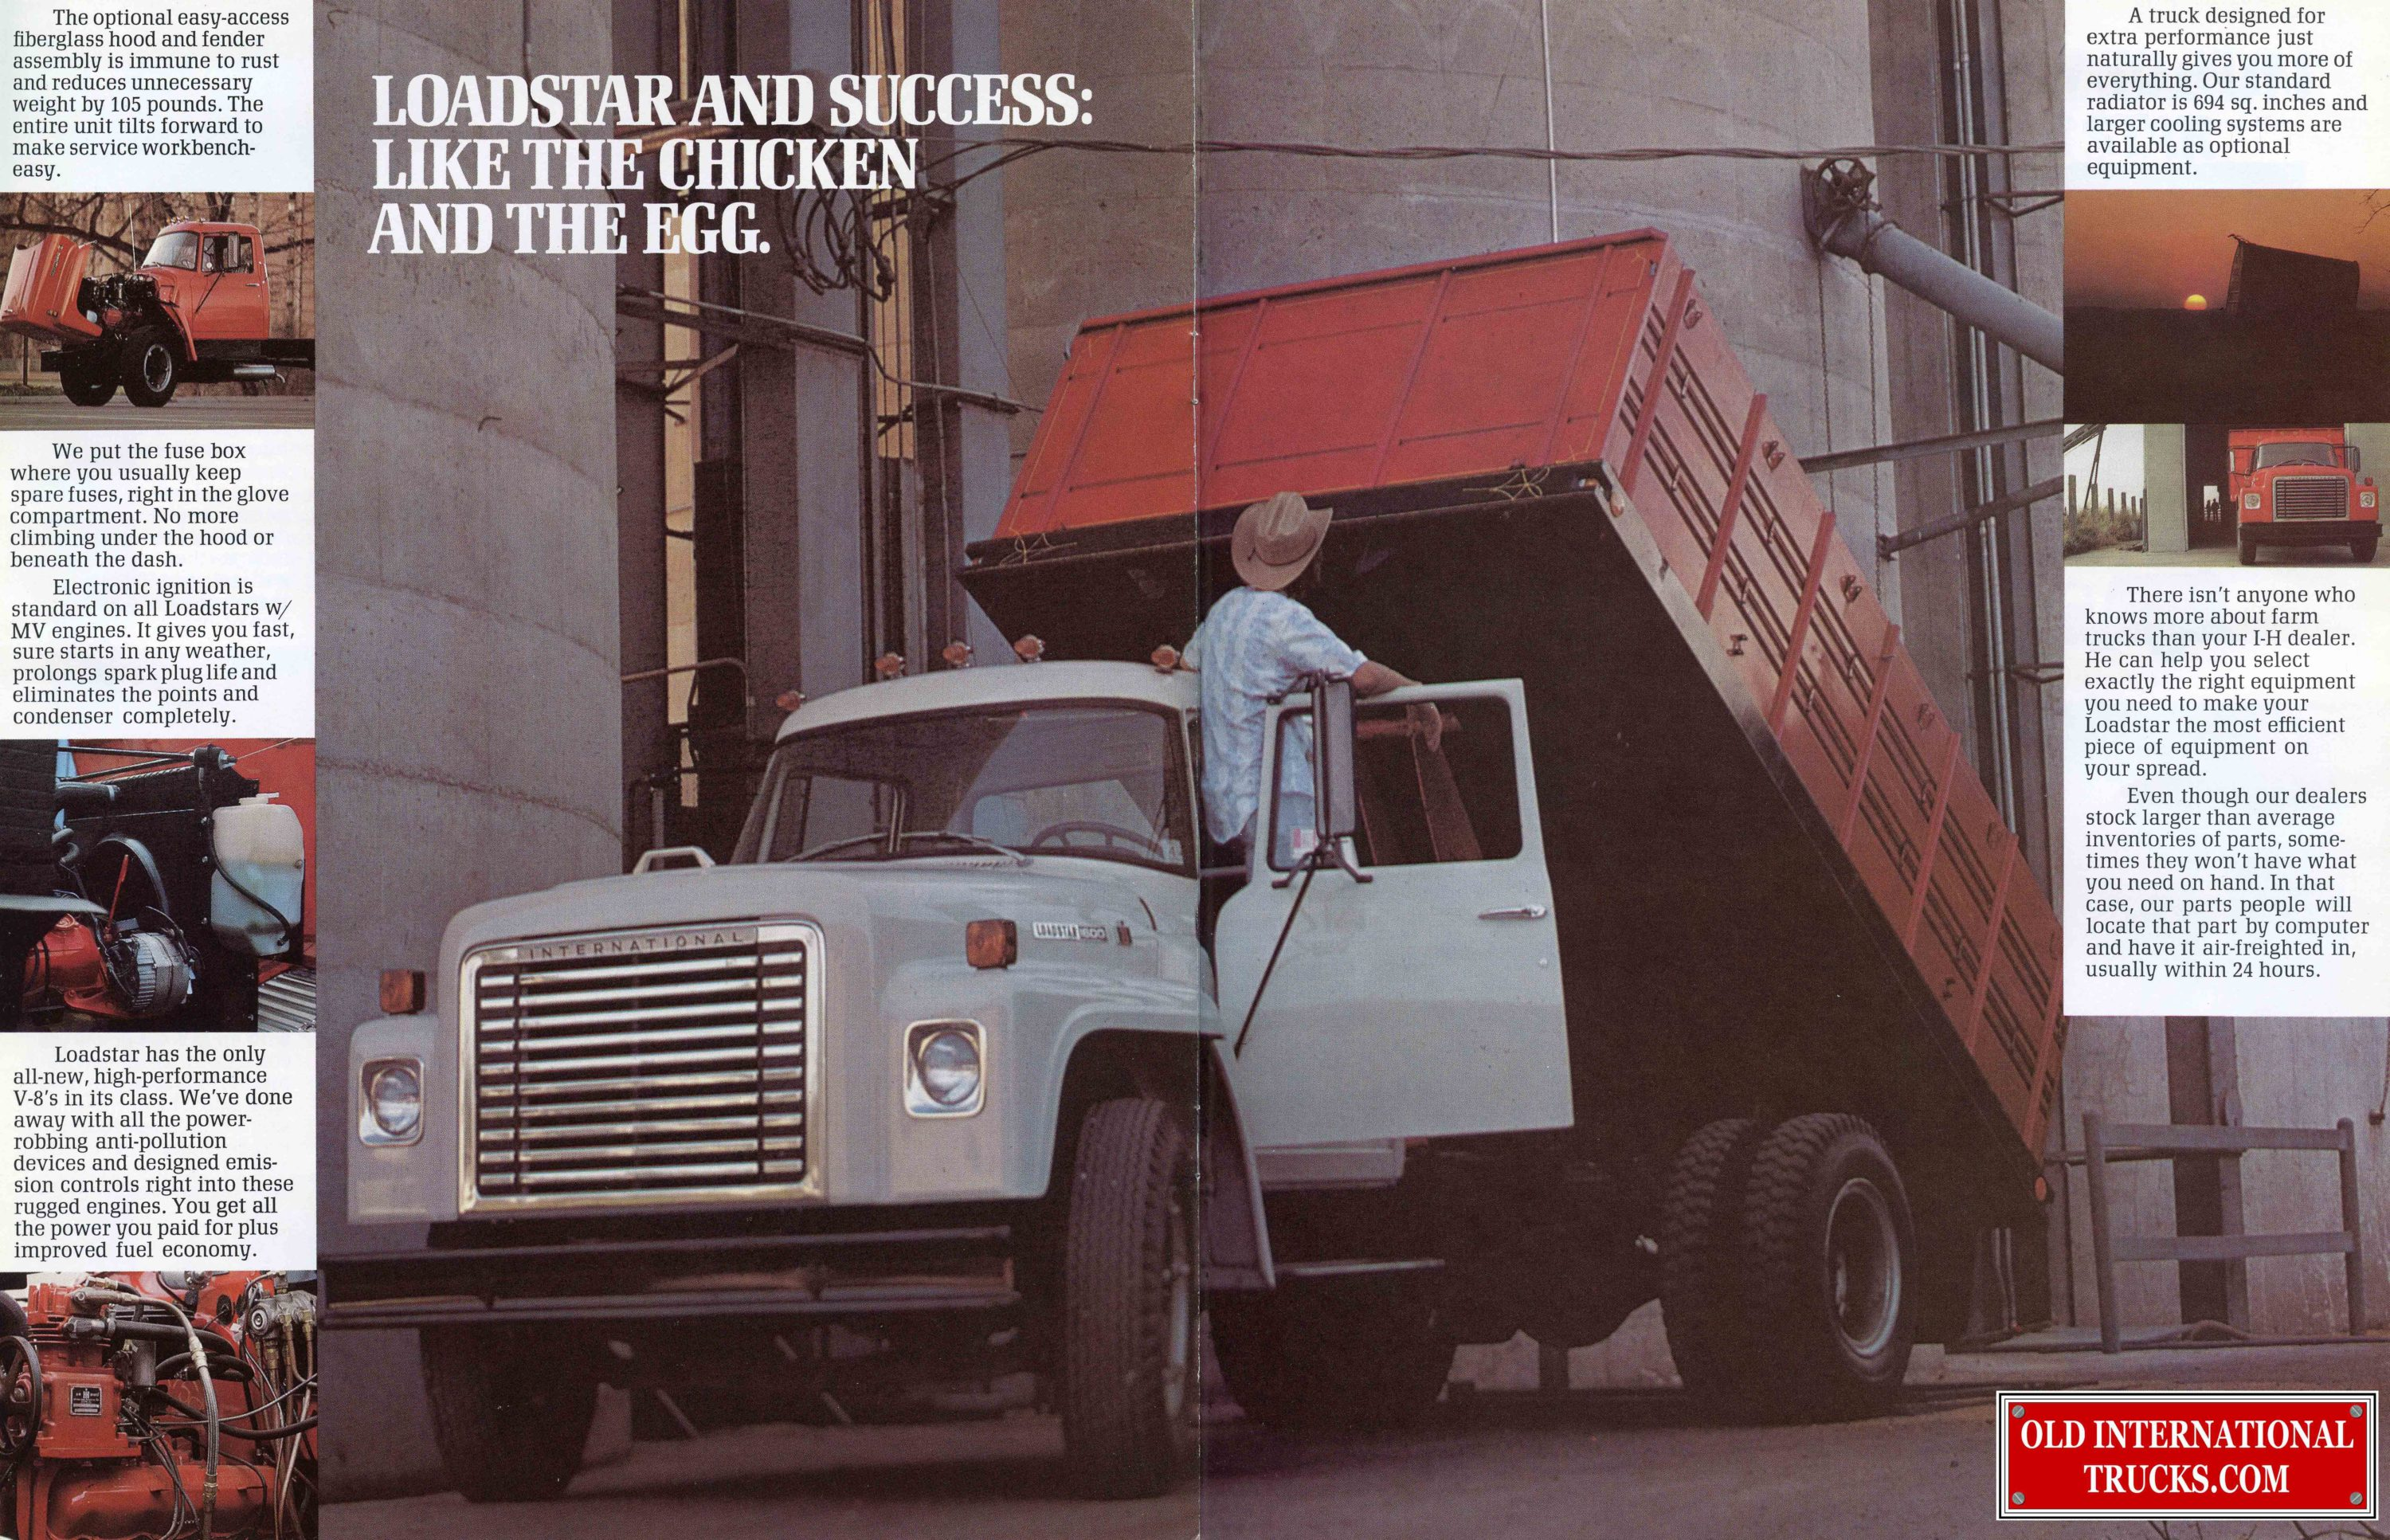 Old International Ads From The Loadstar • Old International Truck Parts